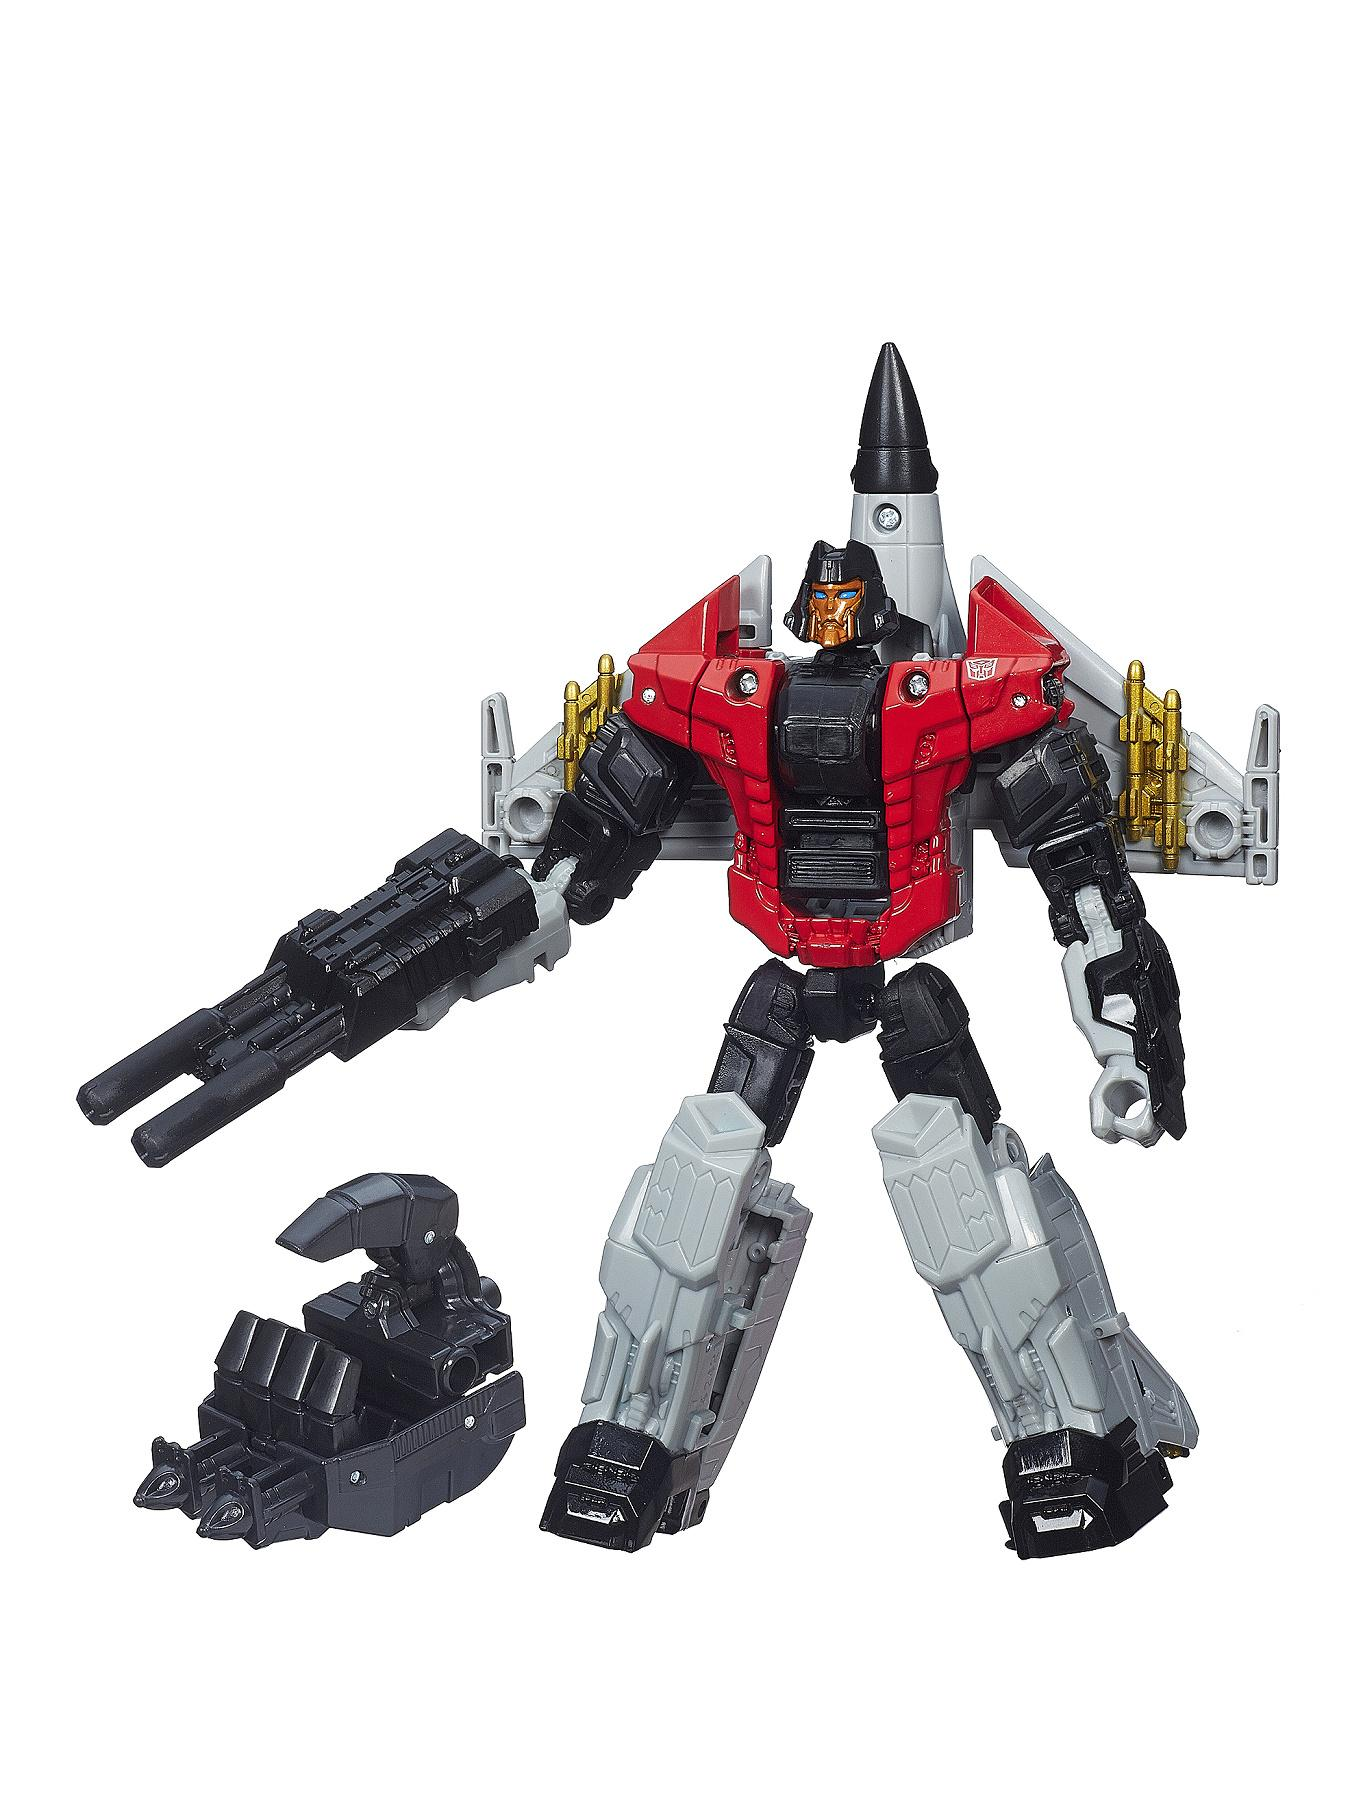 Transformers Generations Combiner Wars Deluxe Class Figure - Skydive